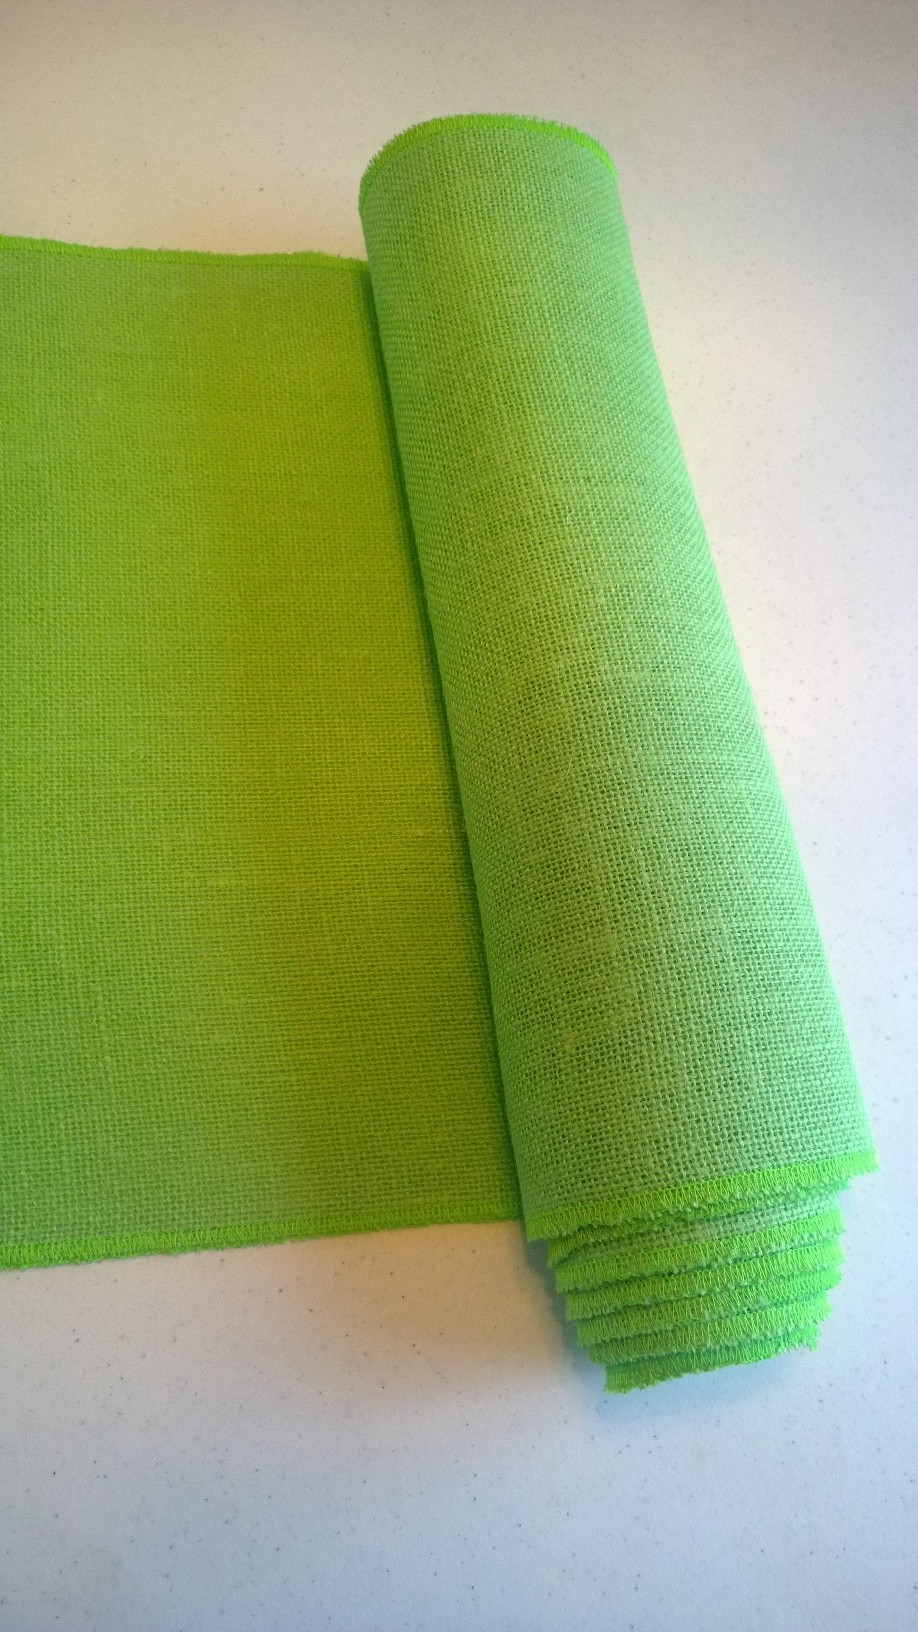 "Lime Burlap Table Runner (Sewn Edges) - 14"" x 90"""